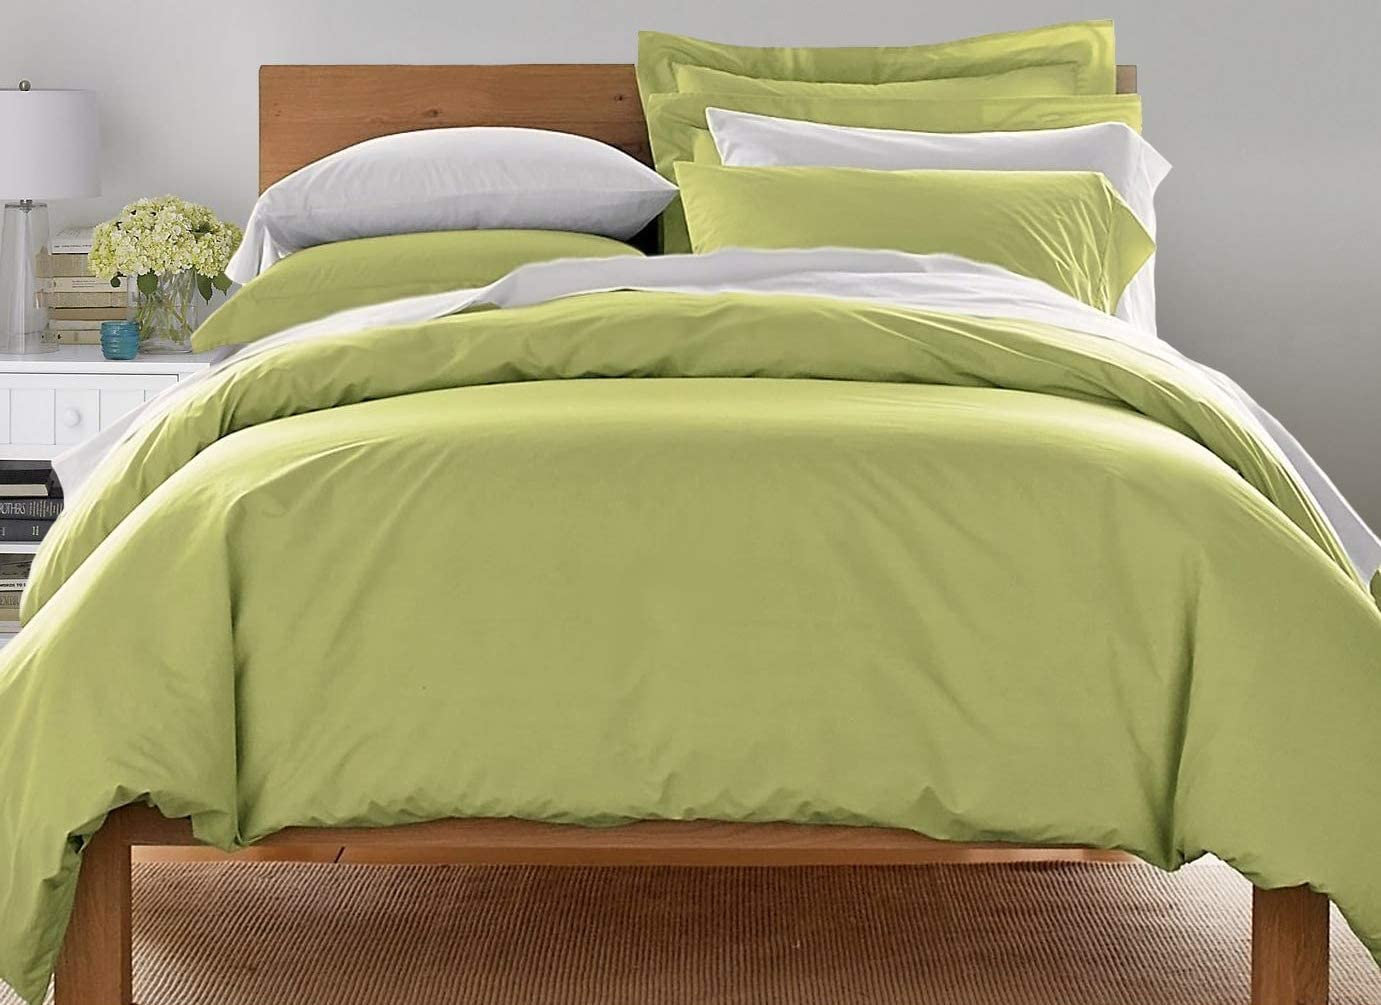 Blue Ridge Home Fashions Light-Weight Brushed Microfiber 3 Piece (1 2 Shams) -Ultra Soft Duvet Cover Set, King, Green